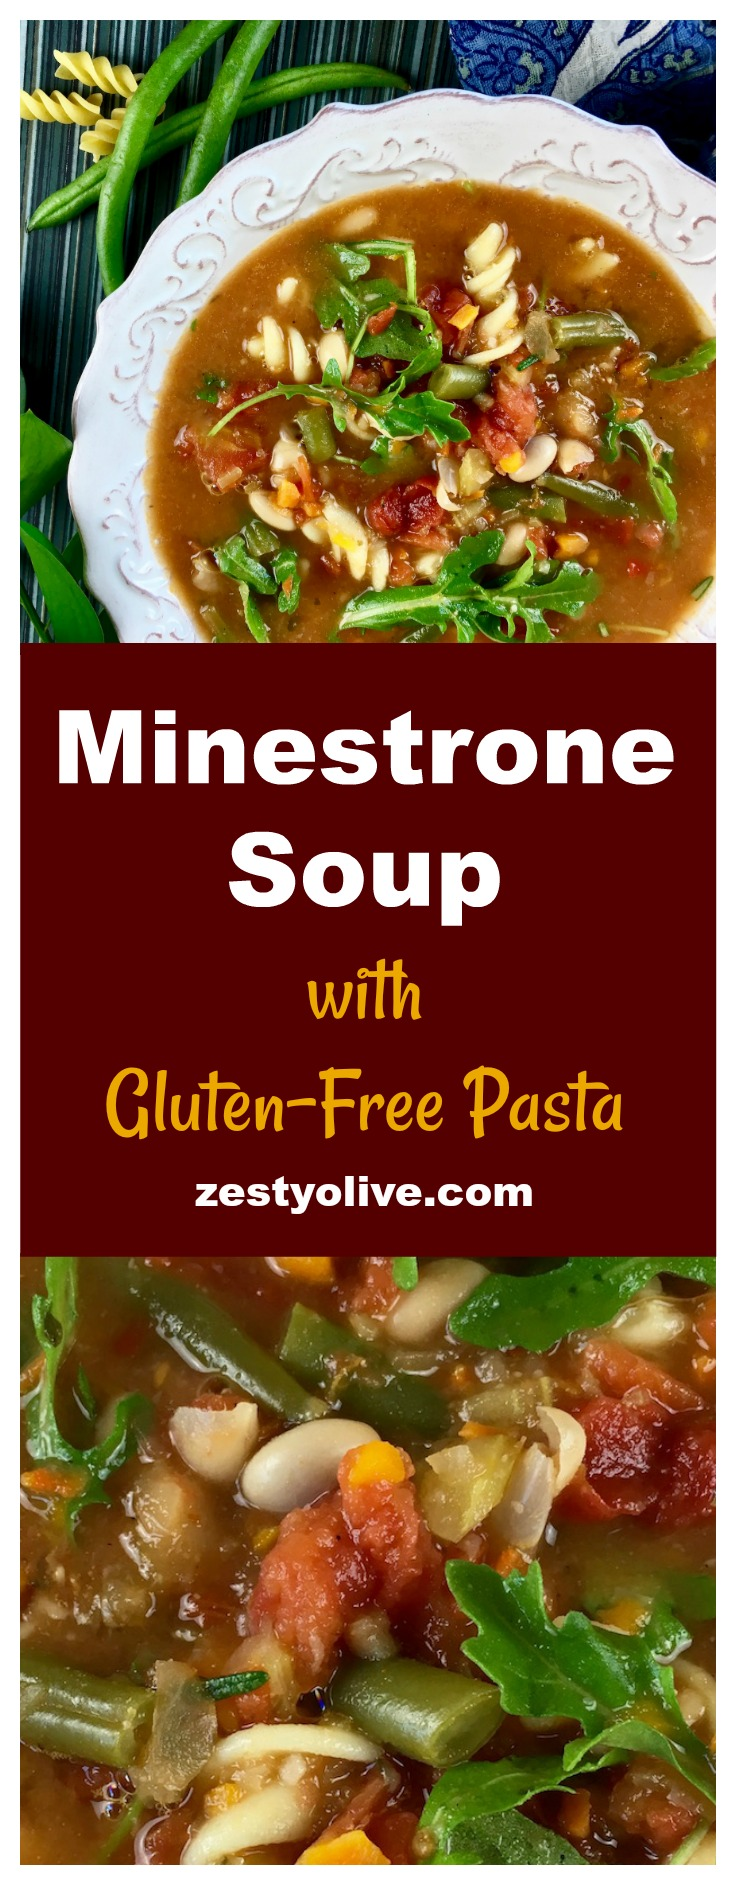 This hearty Italian Minestrone Soup With Gluten Free Pasta is full of healthy veggies and zesty herbs.